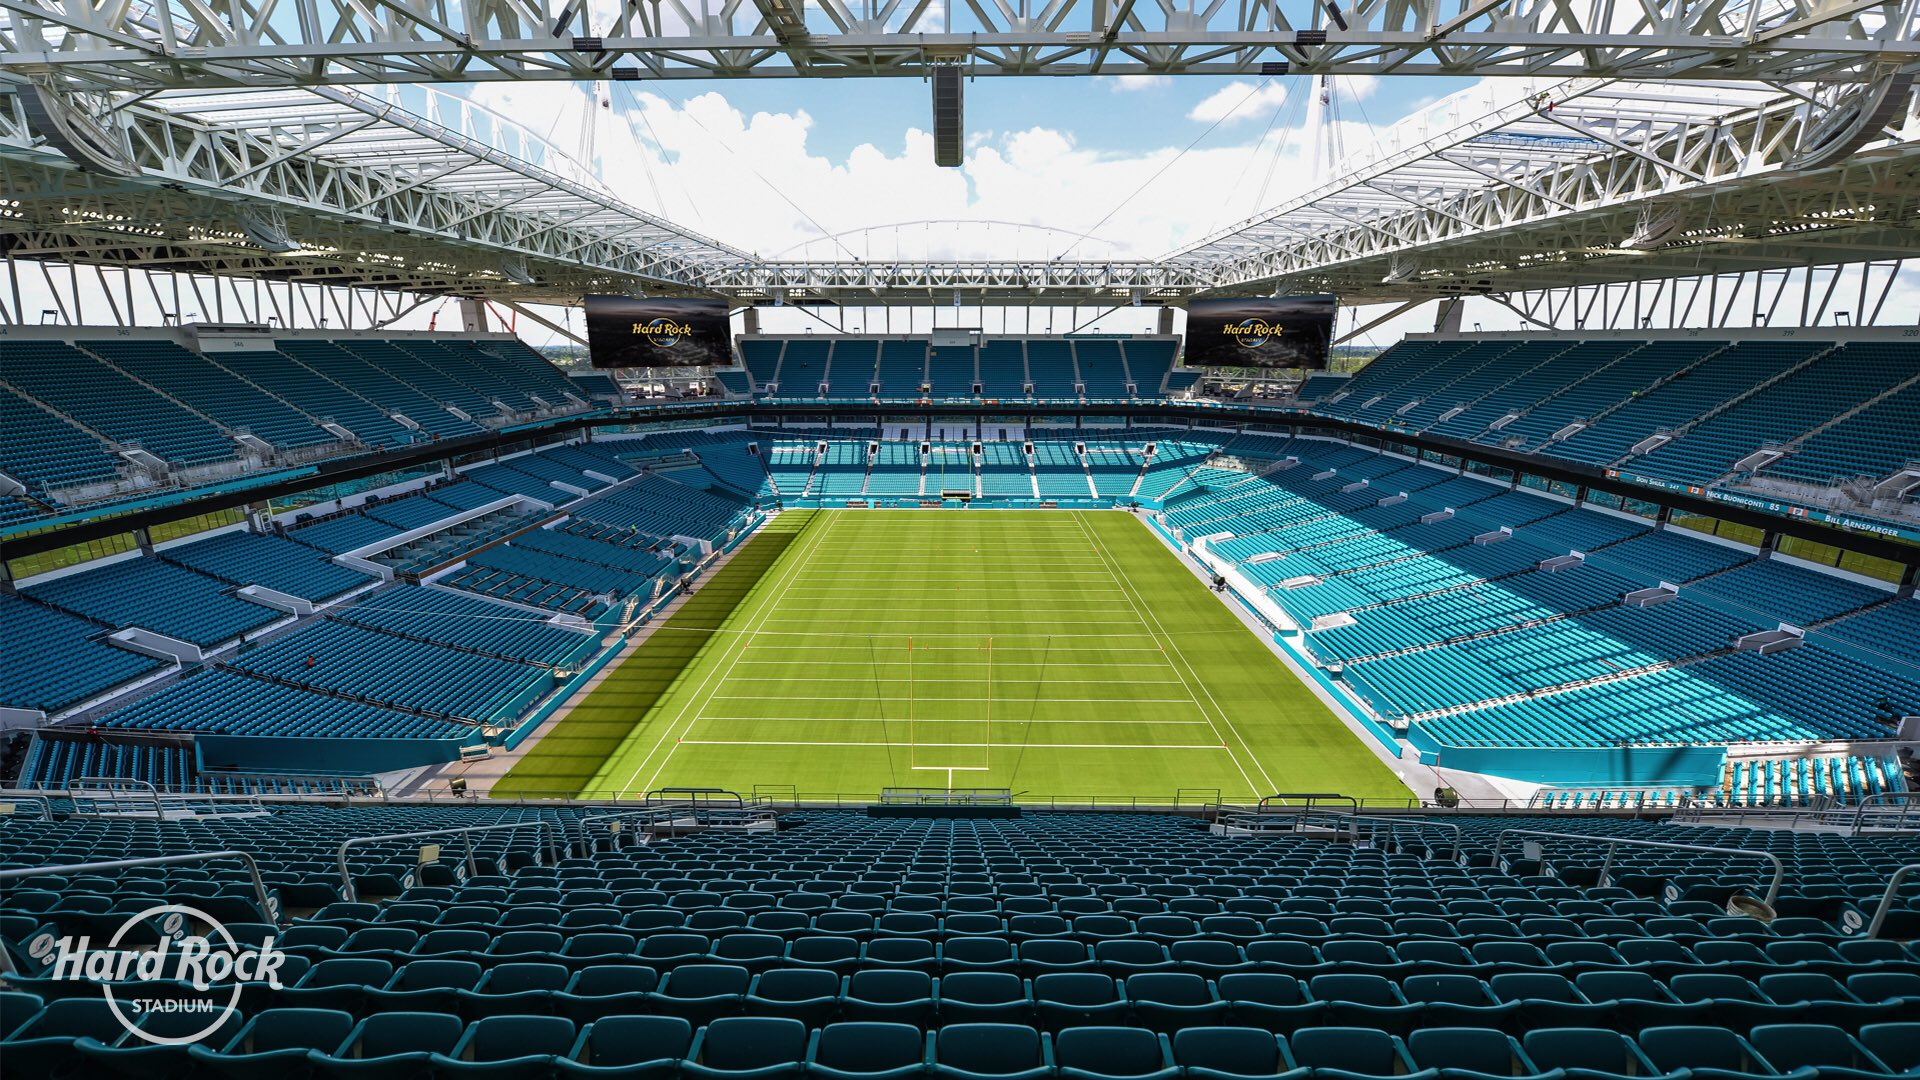 Hard Rock Stadium On Twitter View From The Endzone